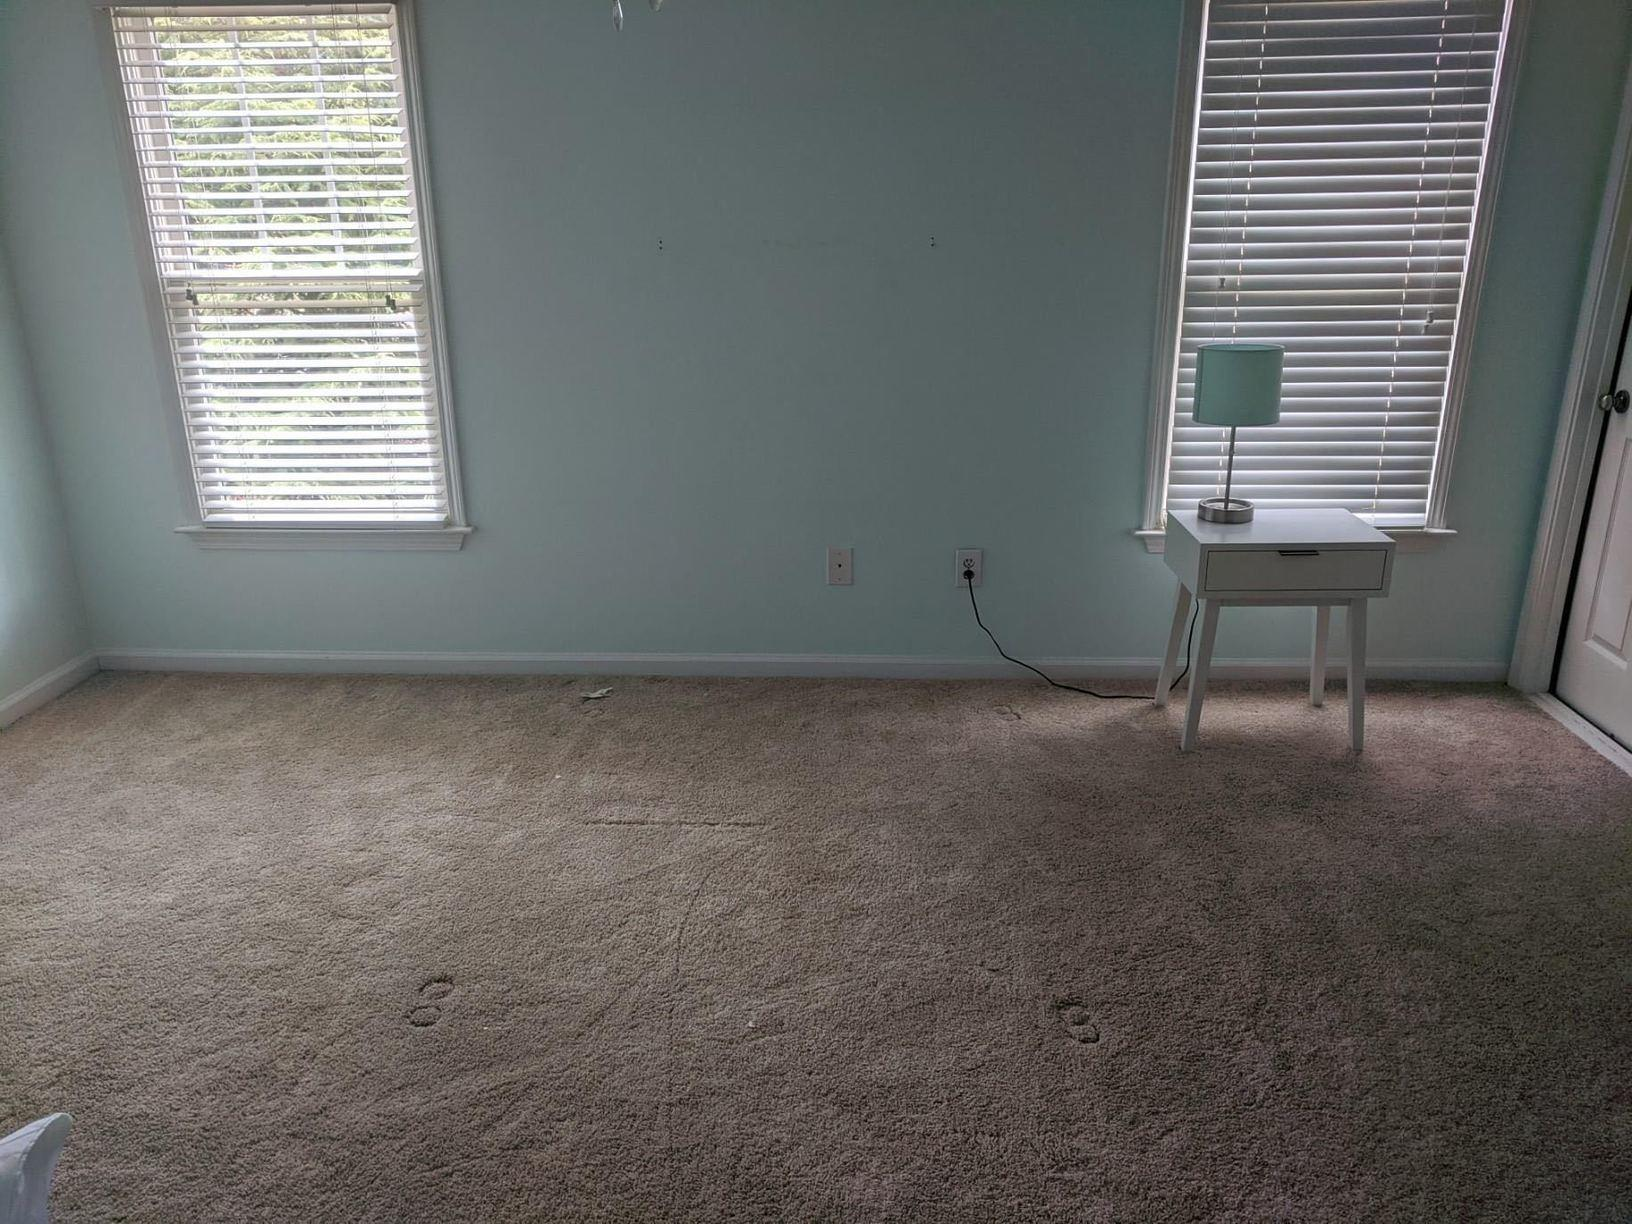 Mattress Removal in Forsyth County, Georgia - After Photo